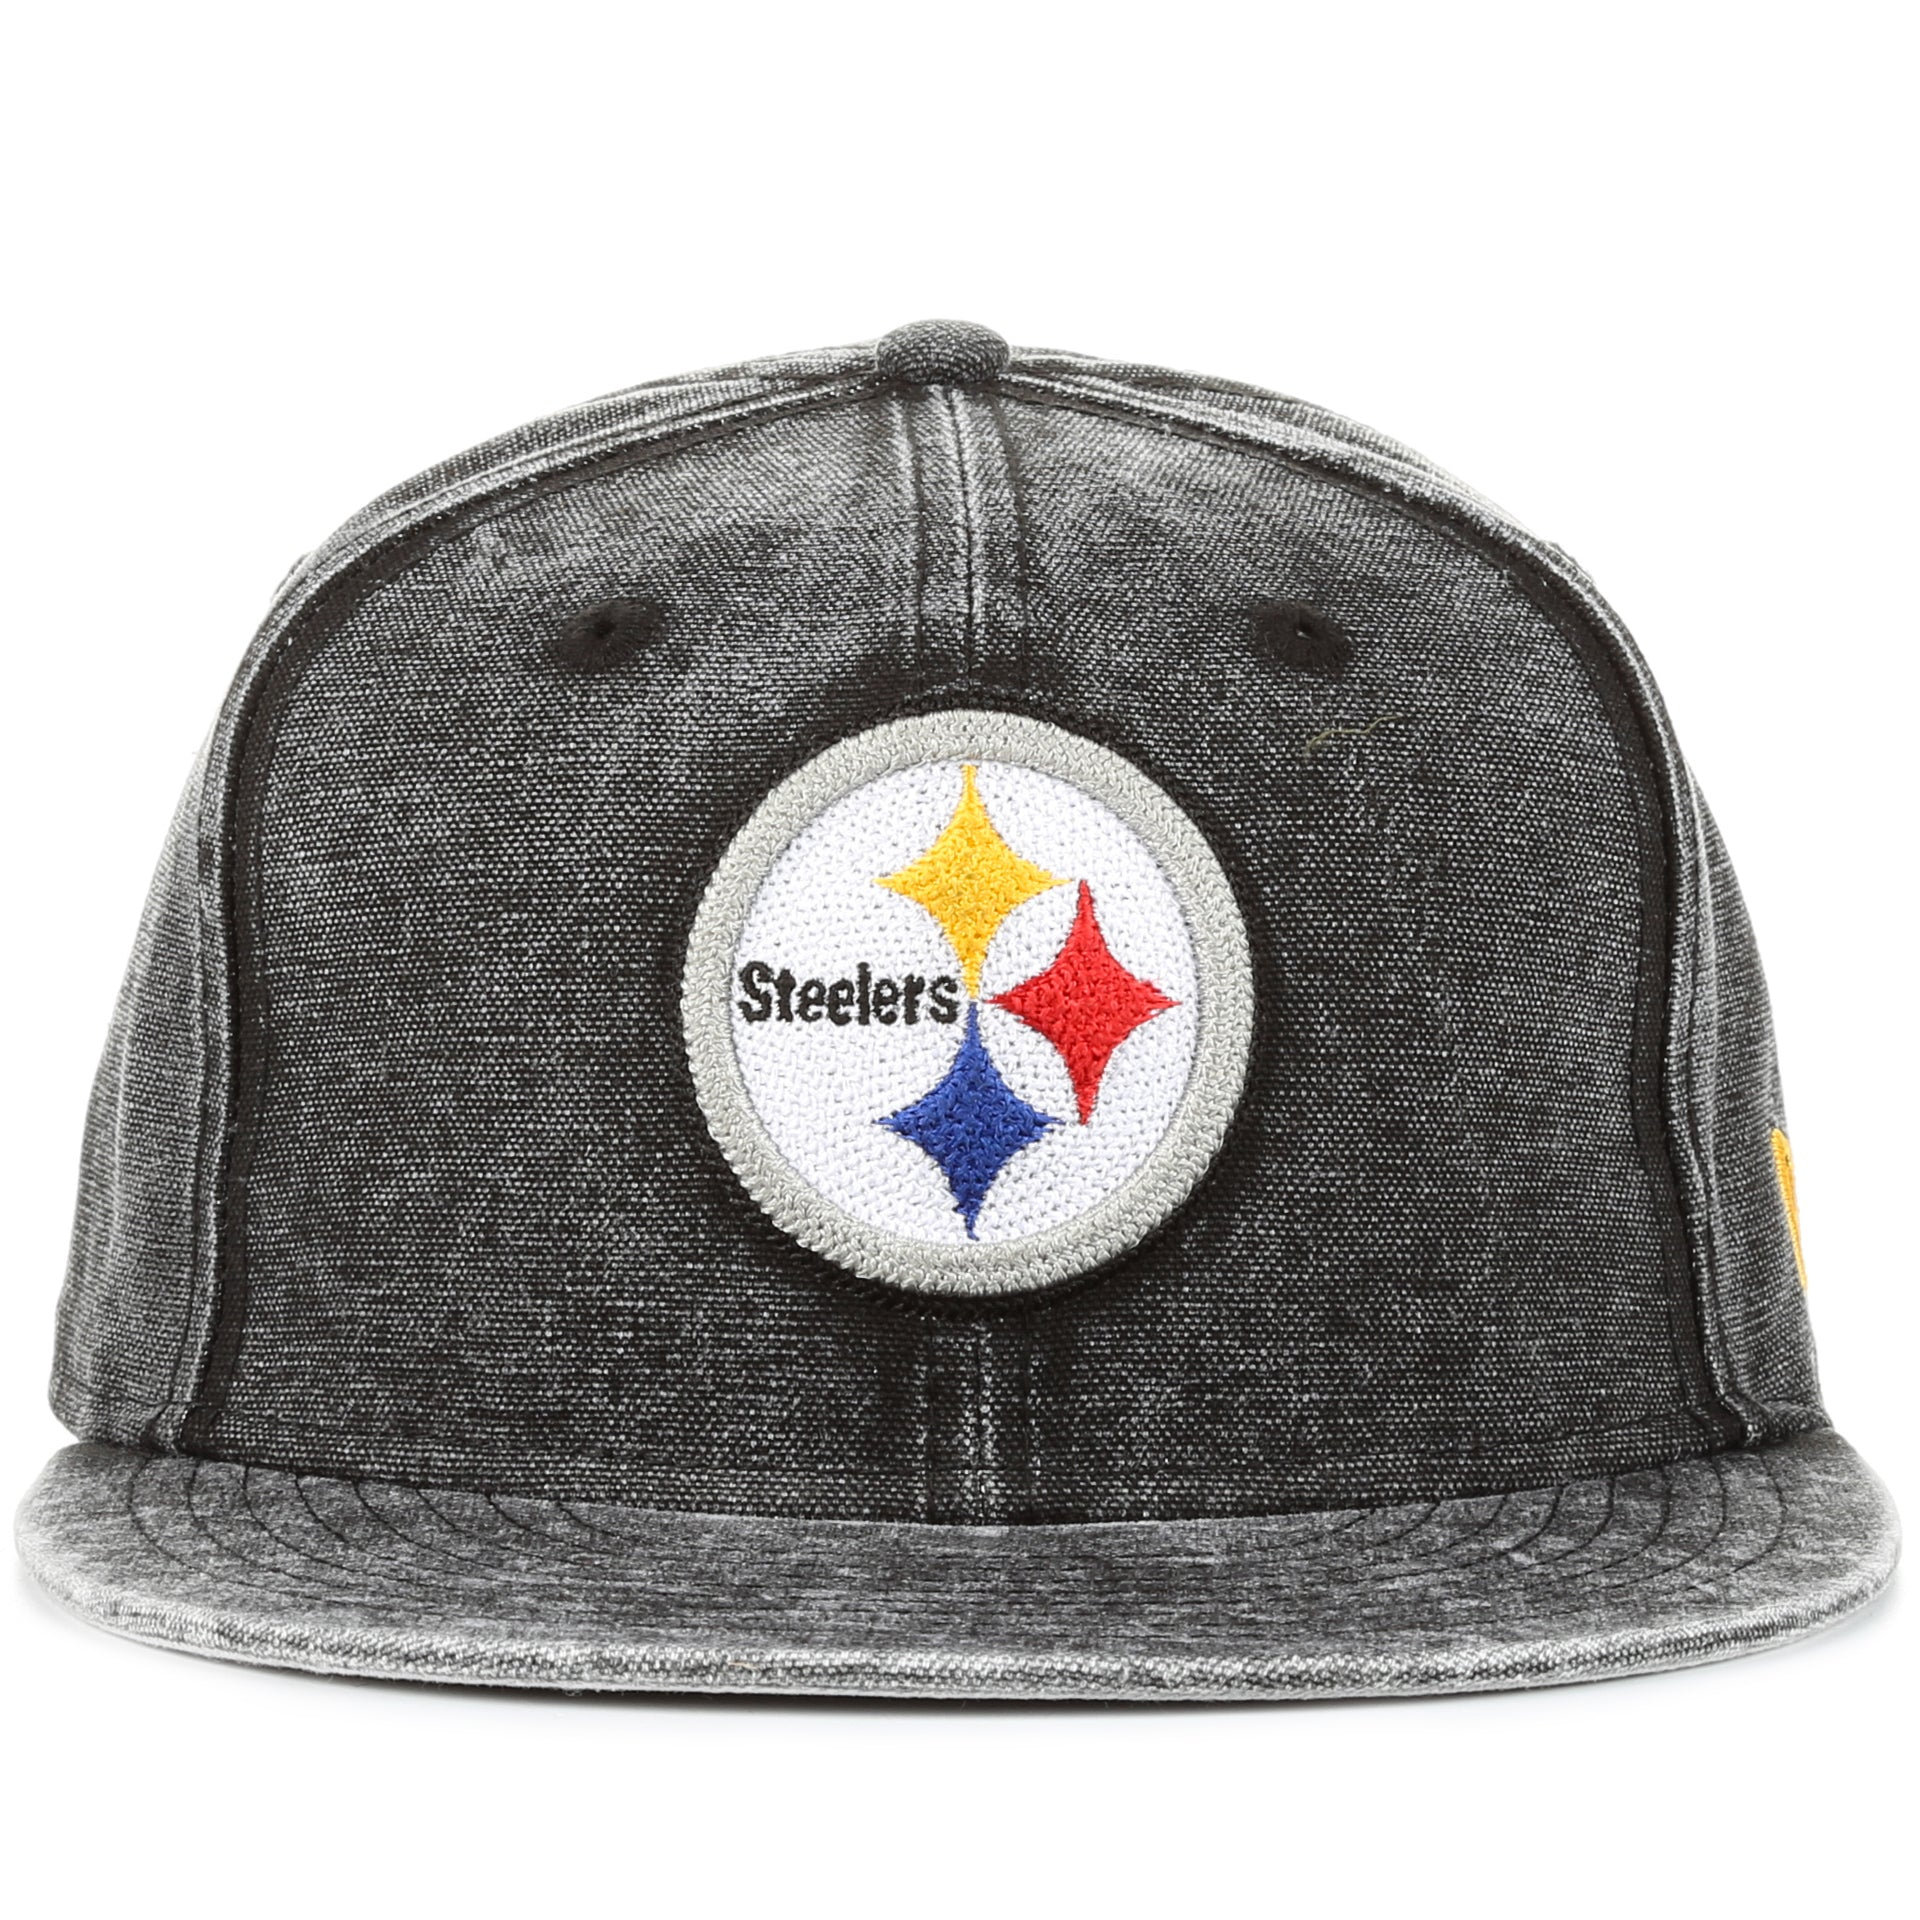 6aea61ec2 New Era 9Fifty Washed Over Snapback - Pittsburgh Steelers/Black Denim